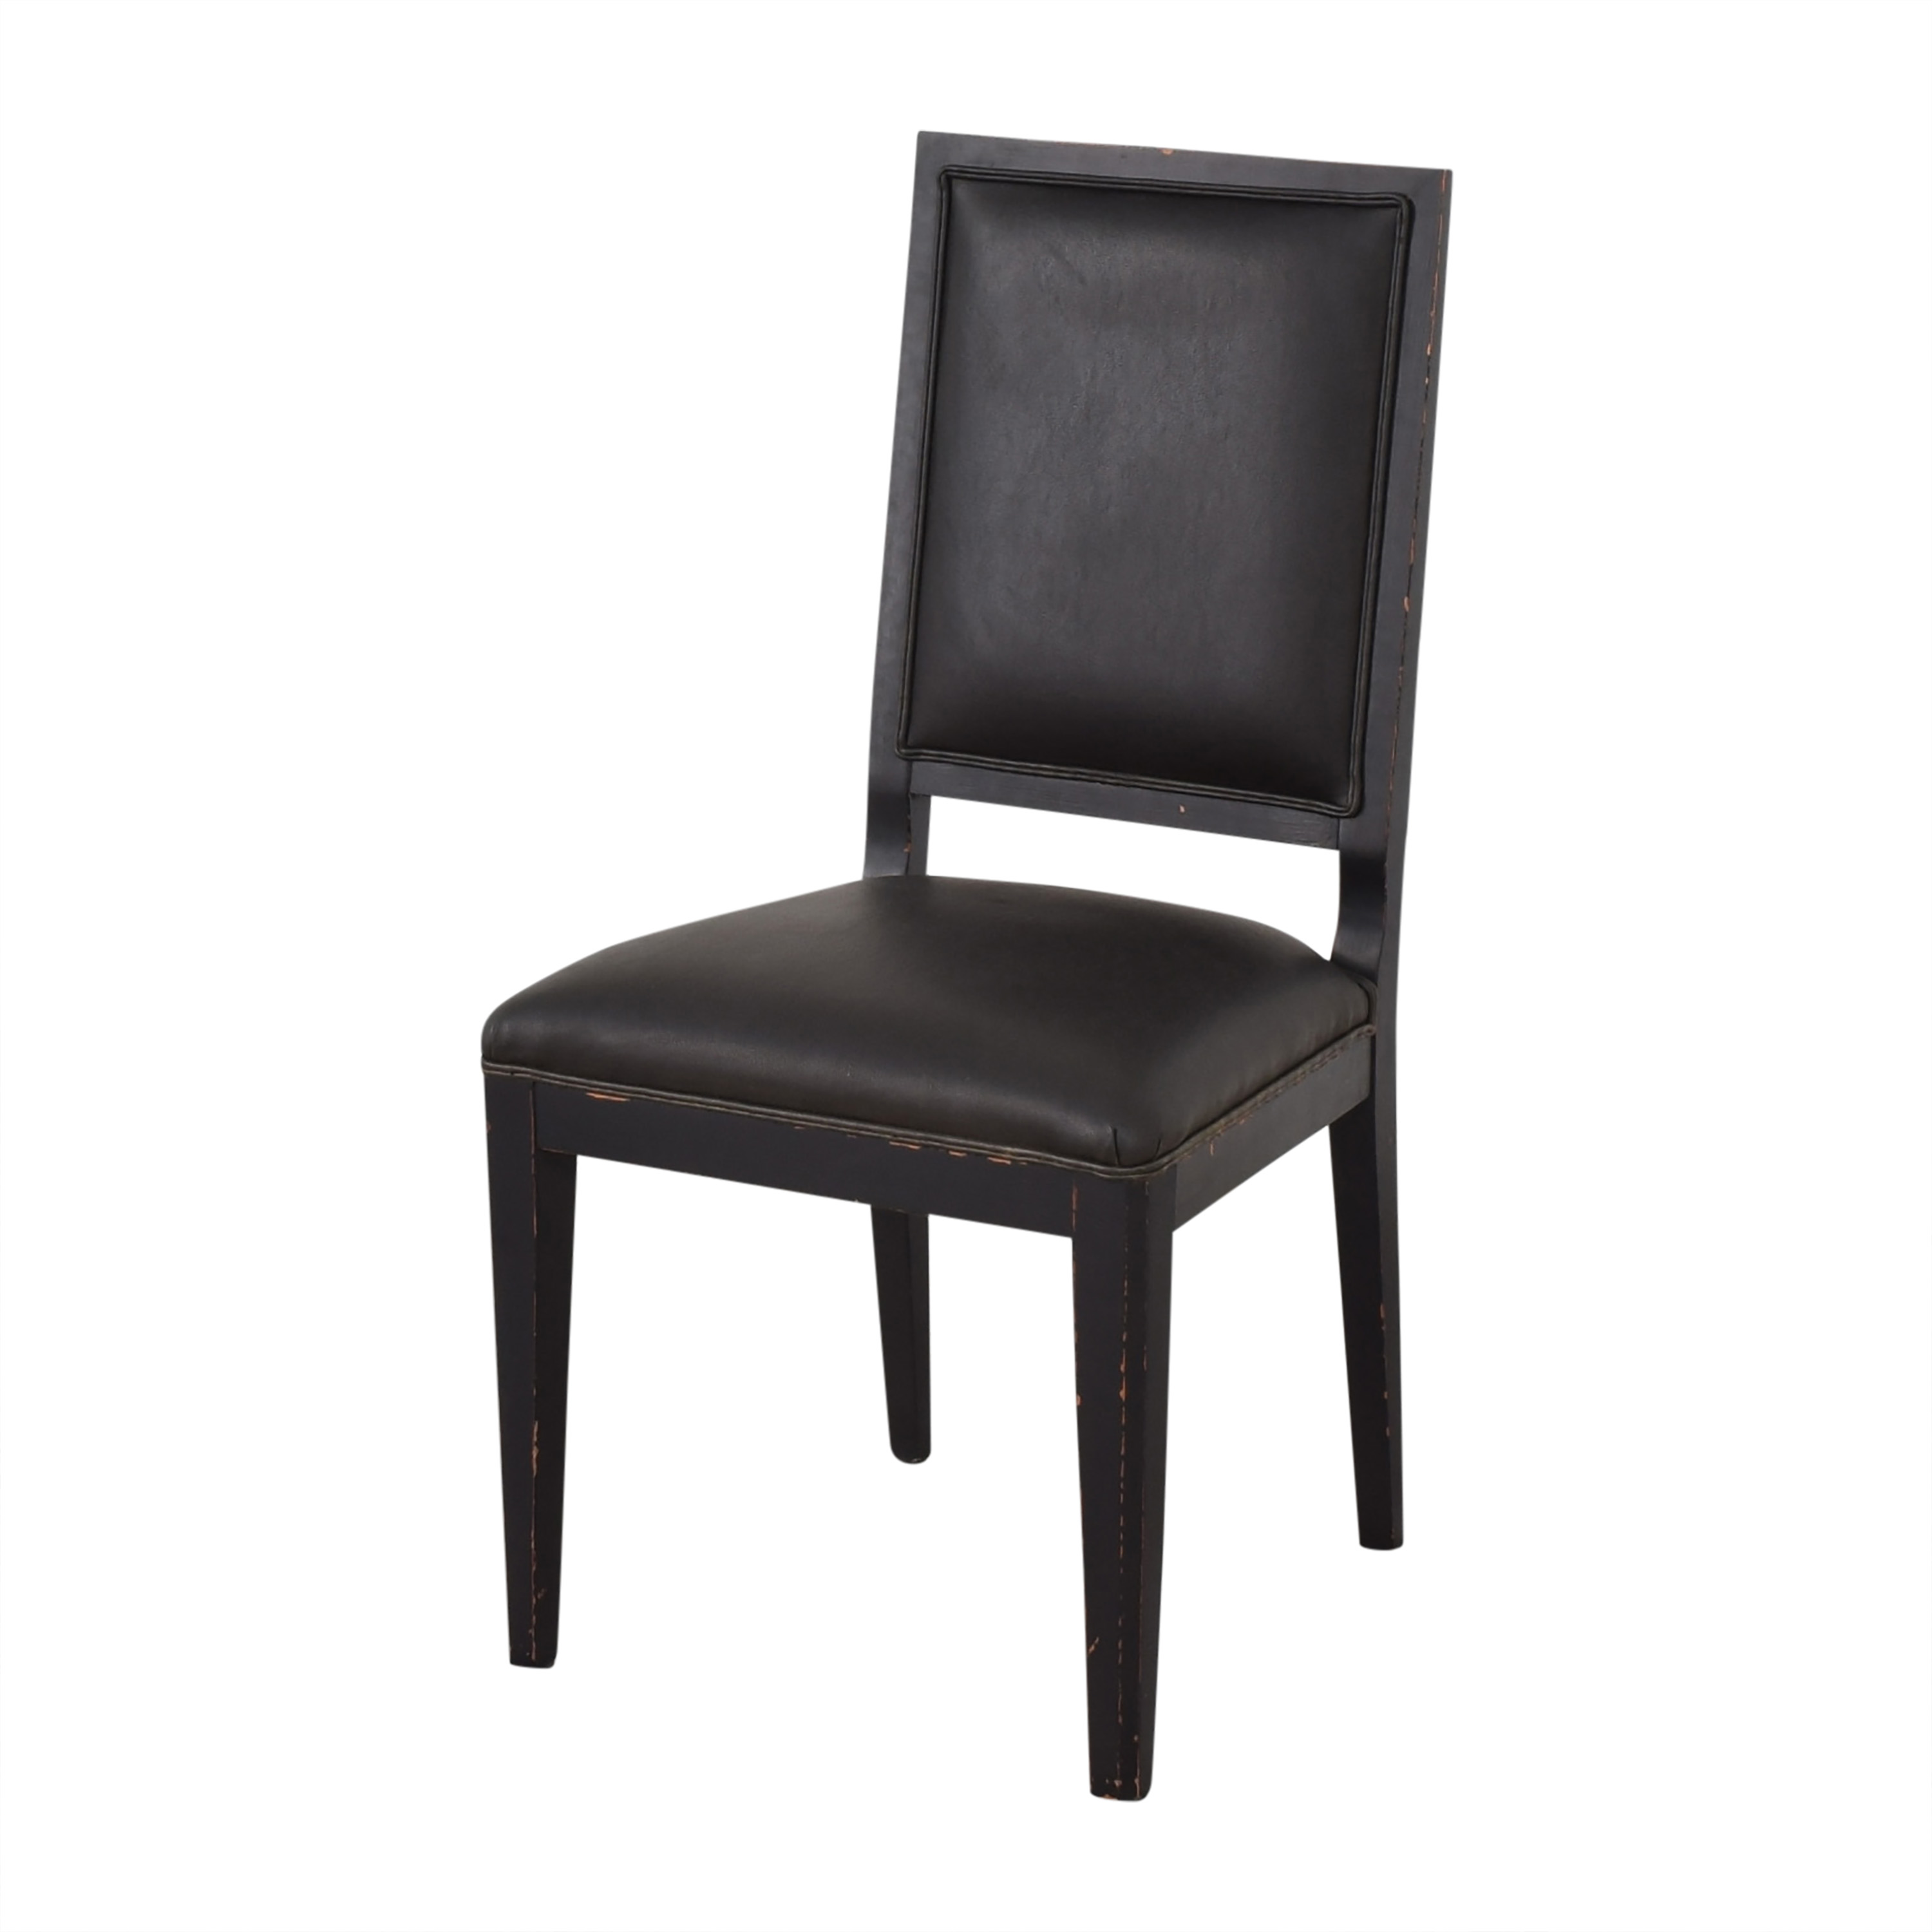 Crate & Barrel Crate & Barrel High Back Dining Chairs nj